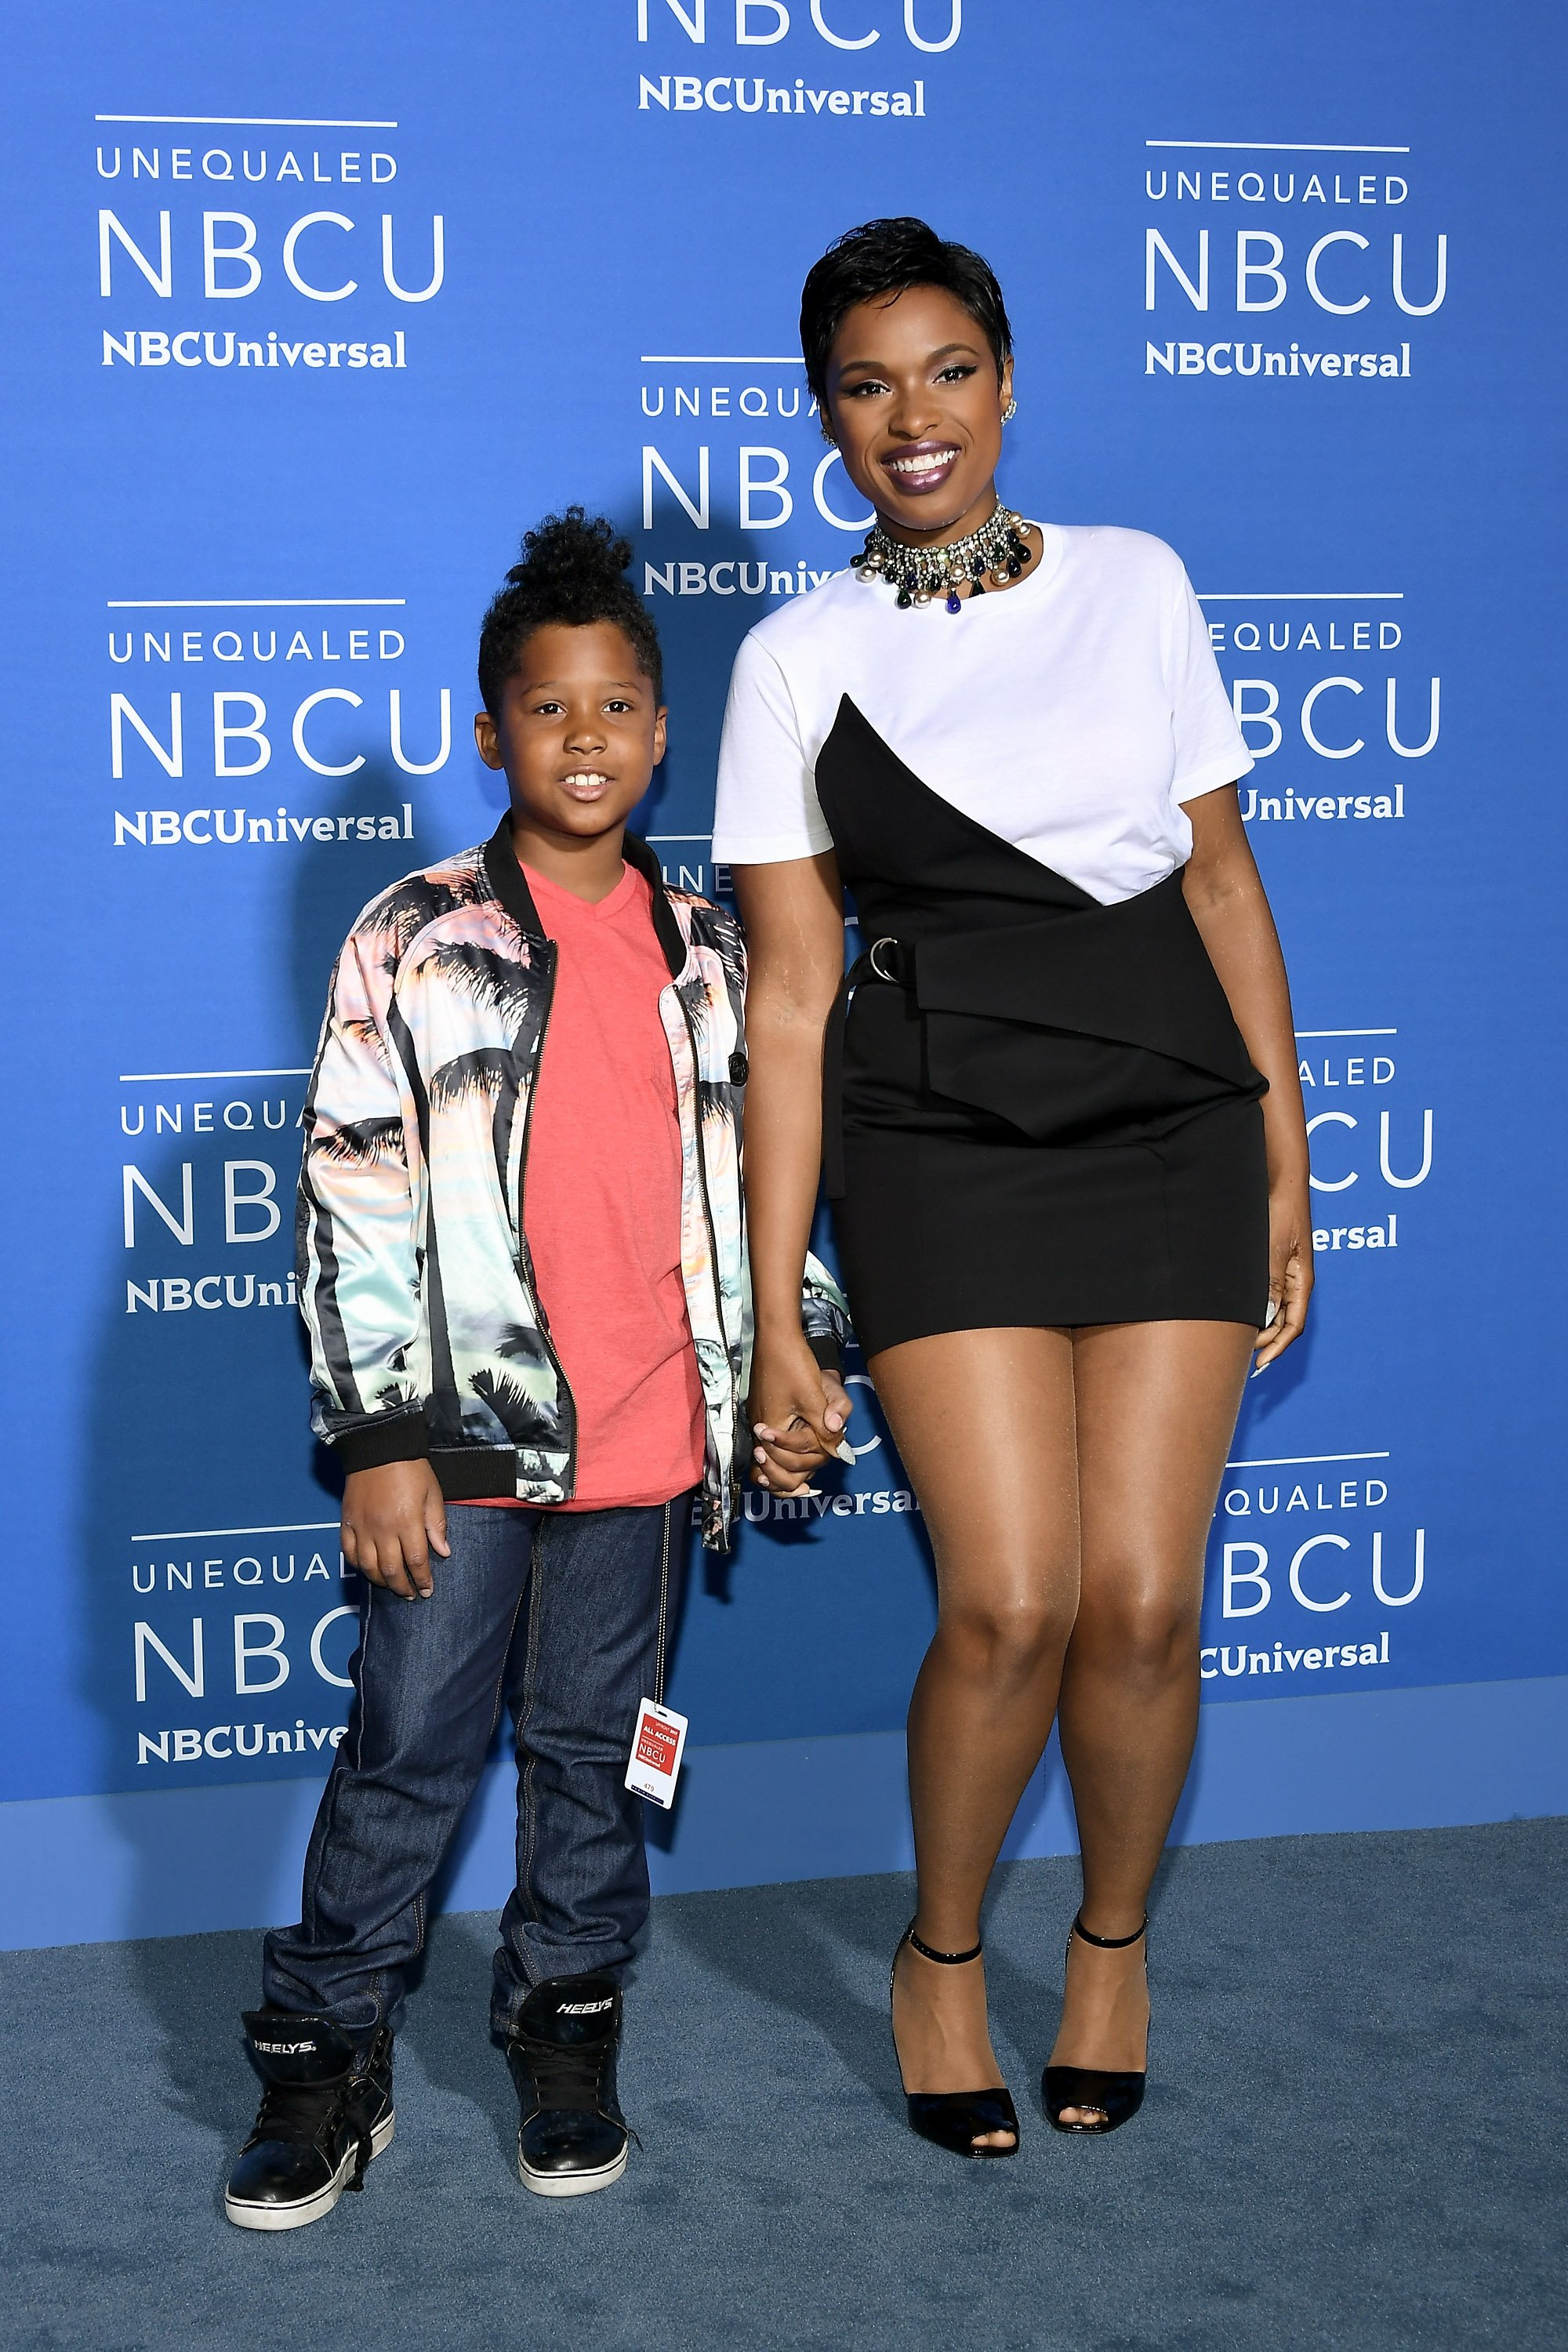 Jennifer Hudson and son David Otunga Jr. attend the 2017 NBCUniversal Upfront at Radio City Music Hall on May 15, 2017 in New York City | Photo: GettyImages